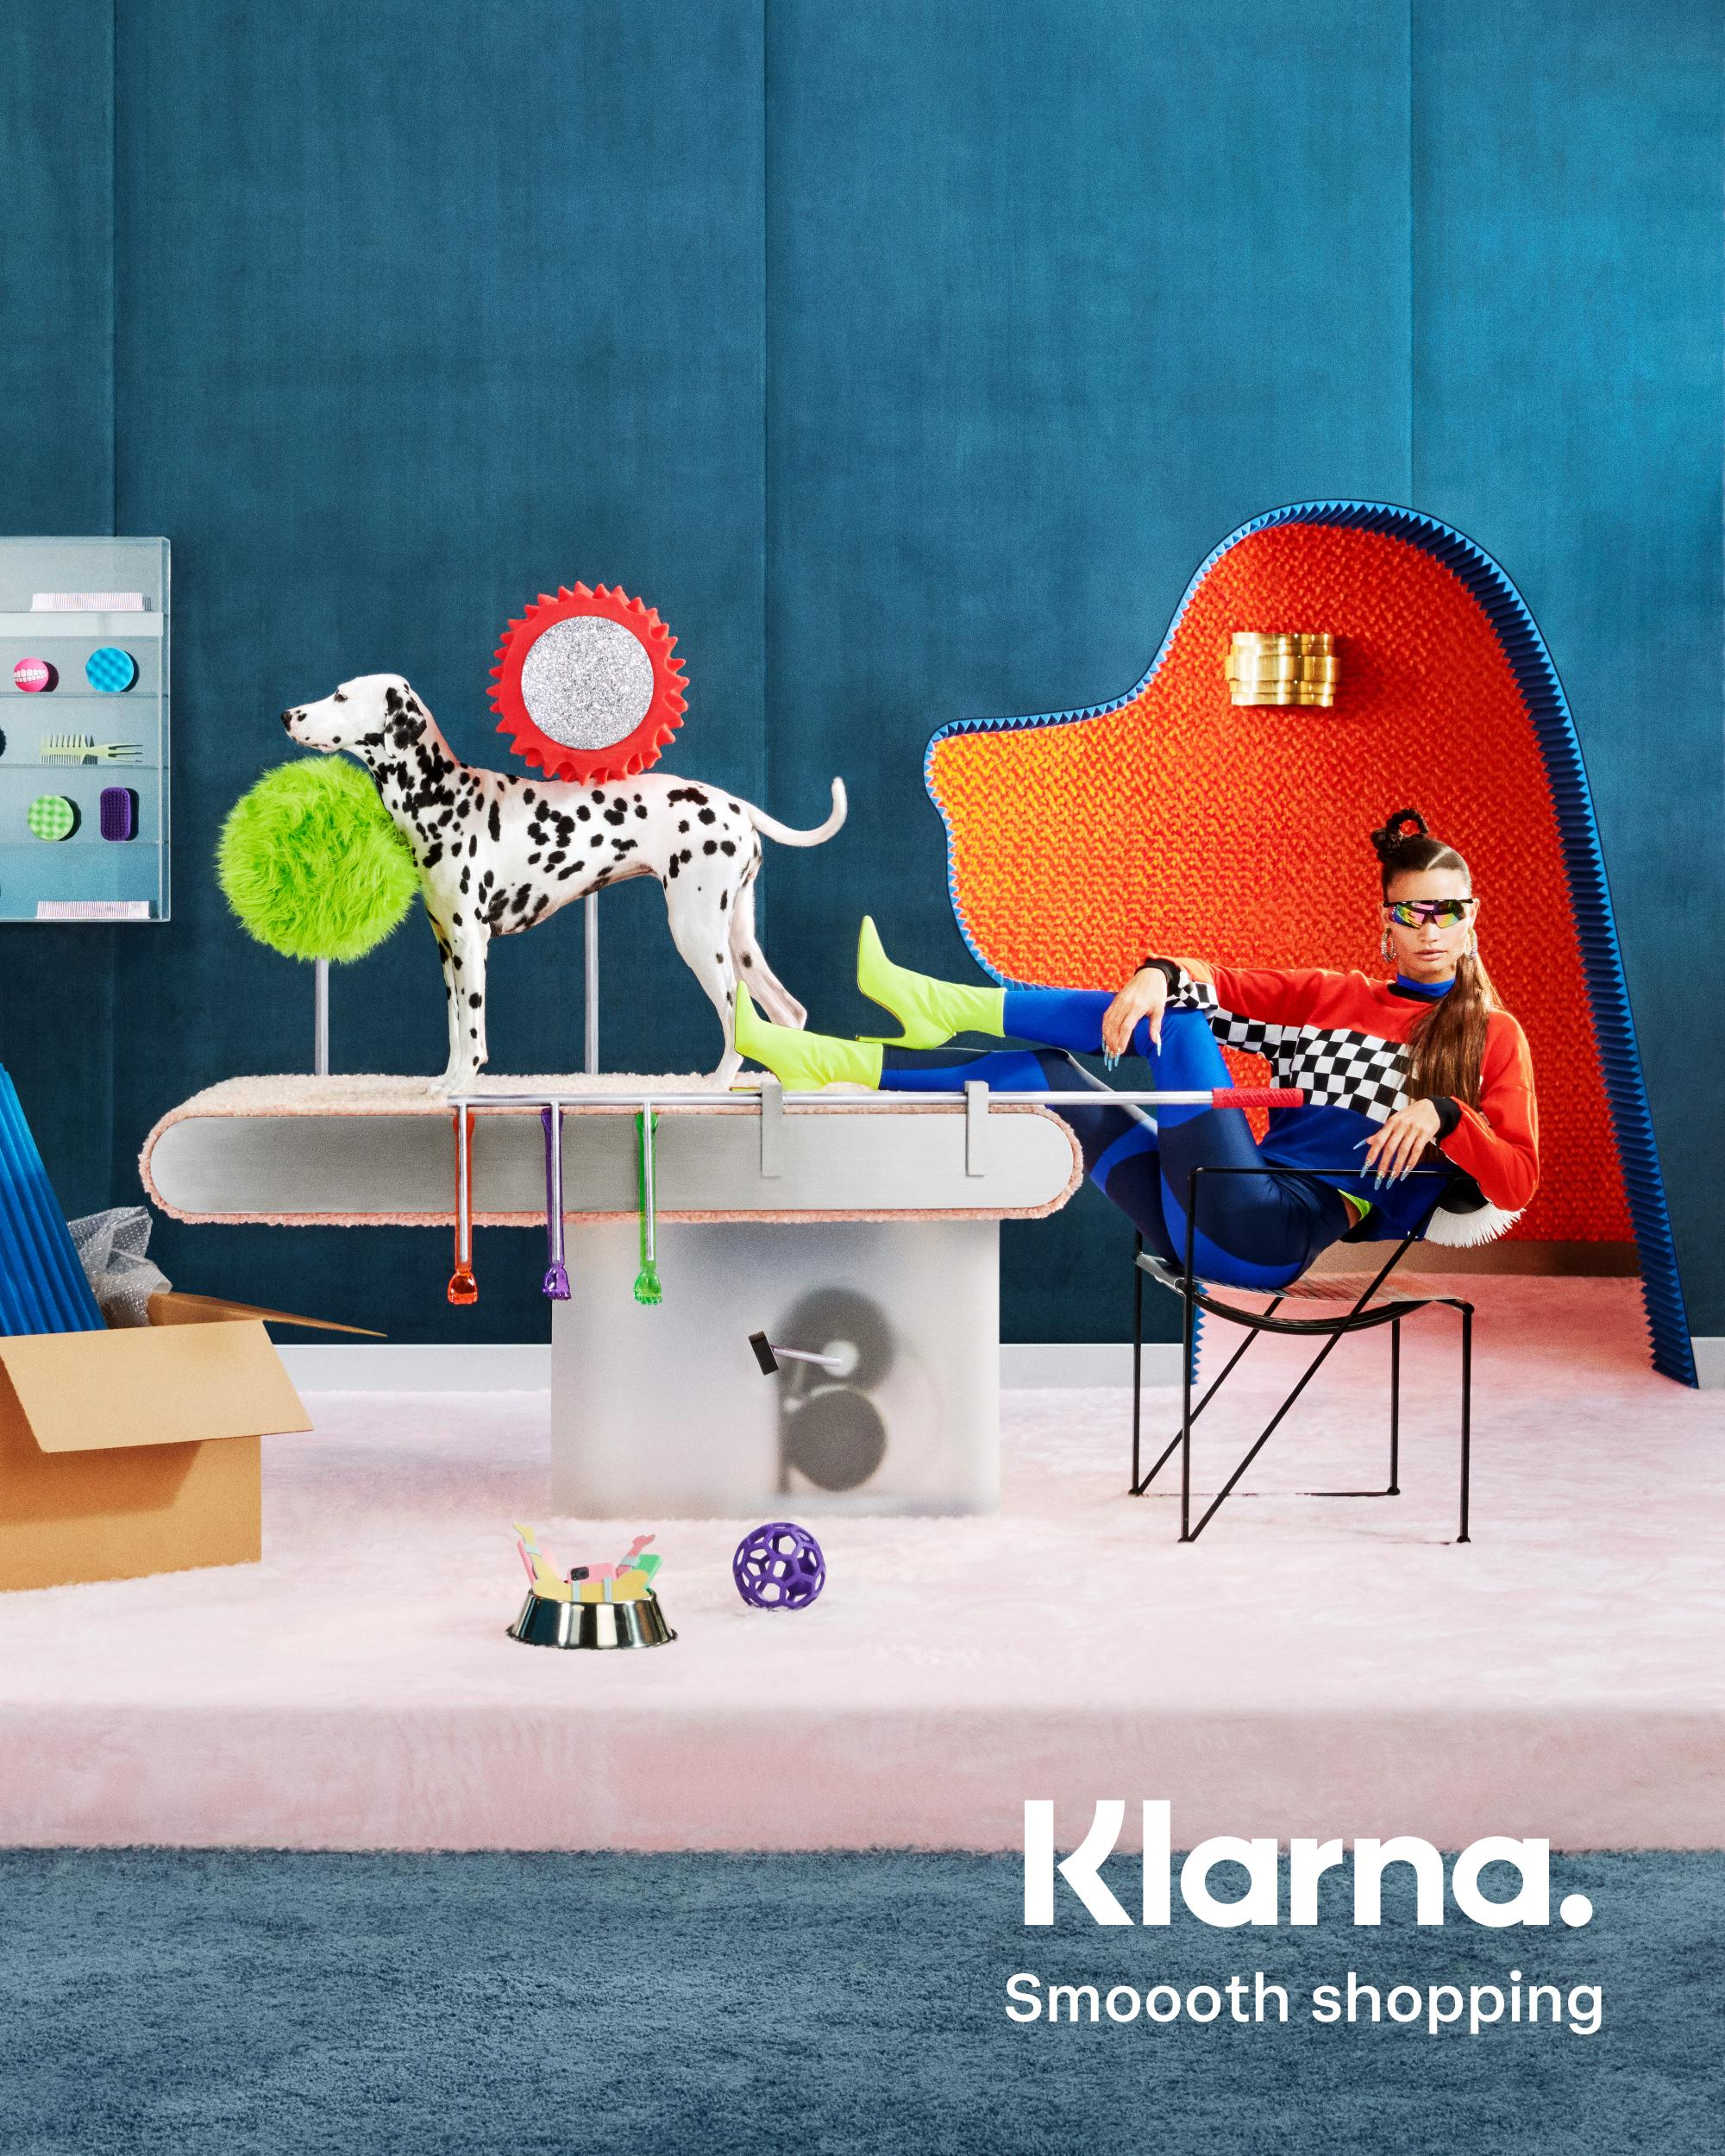 Klarna - smooth shopping